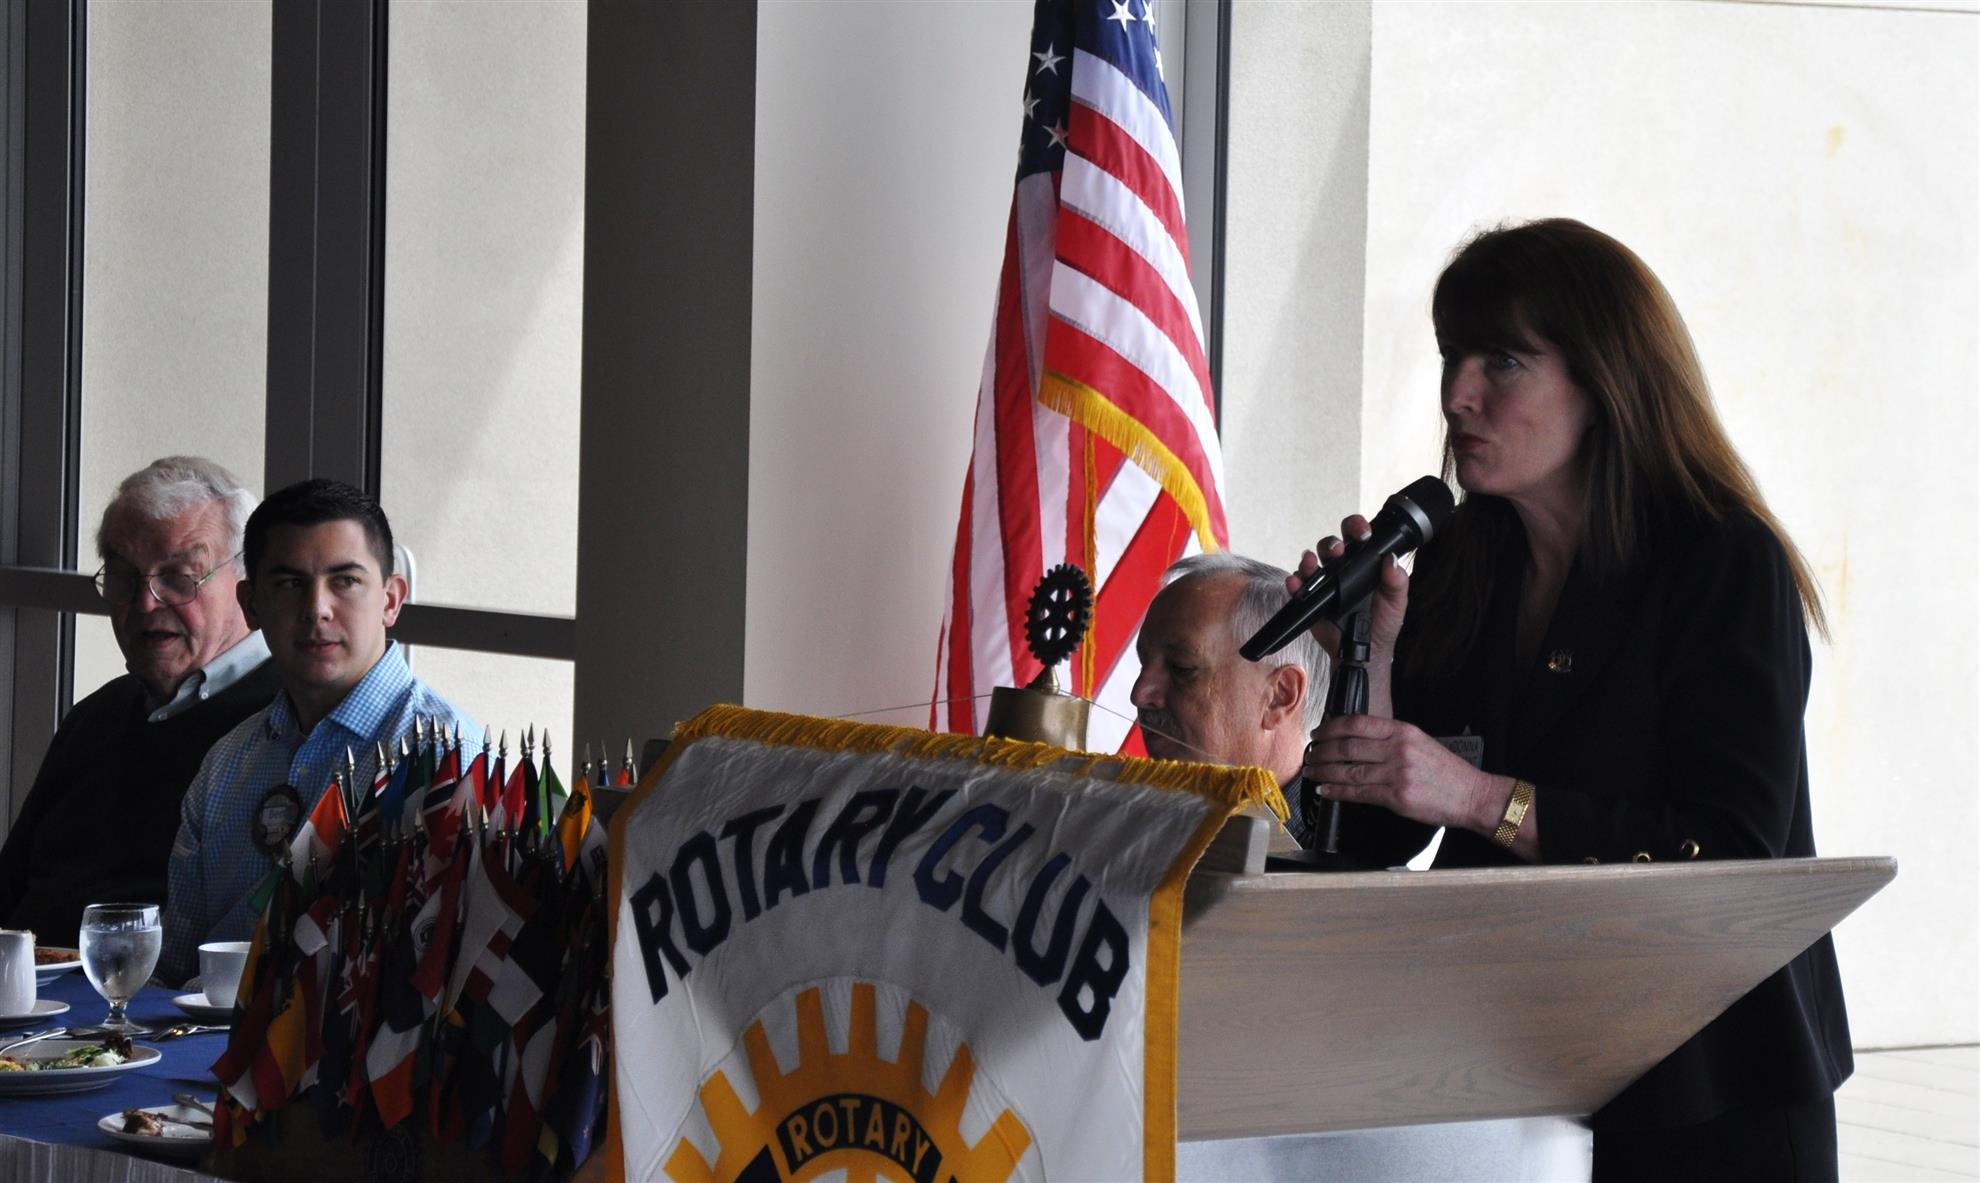 Stories | Rotary Club of Coeur d'Alene Sunrise